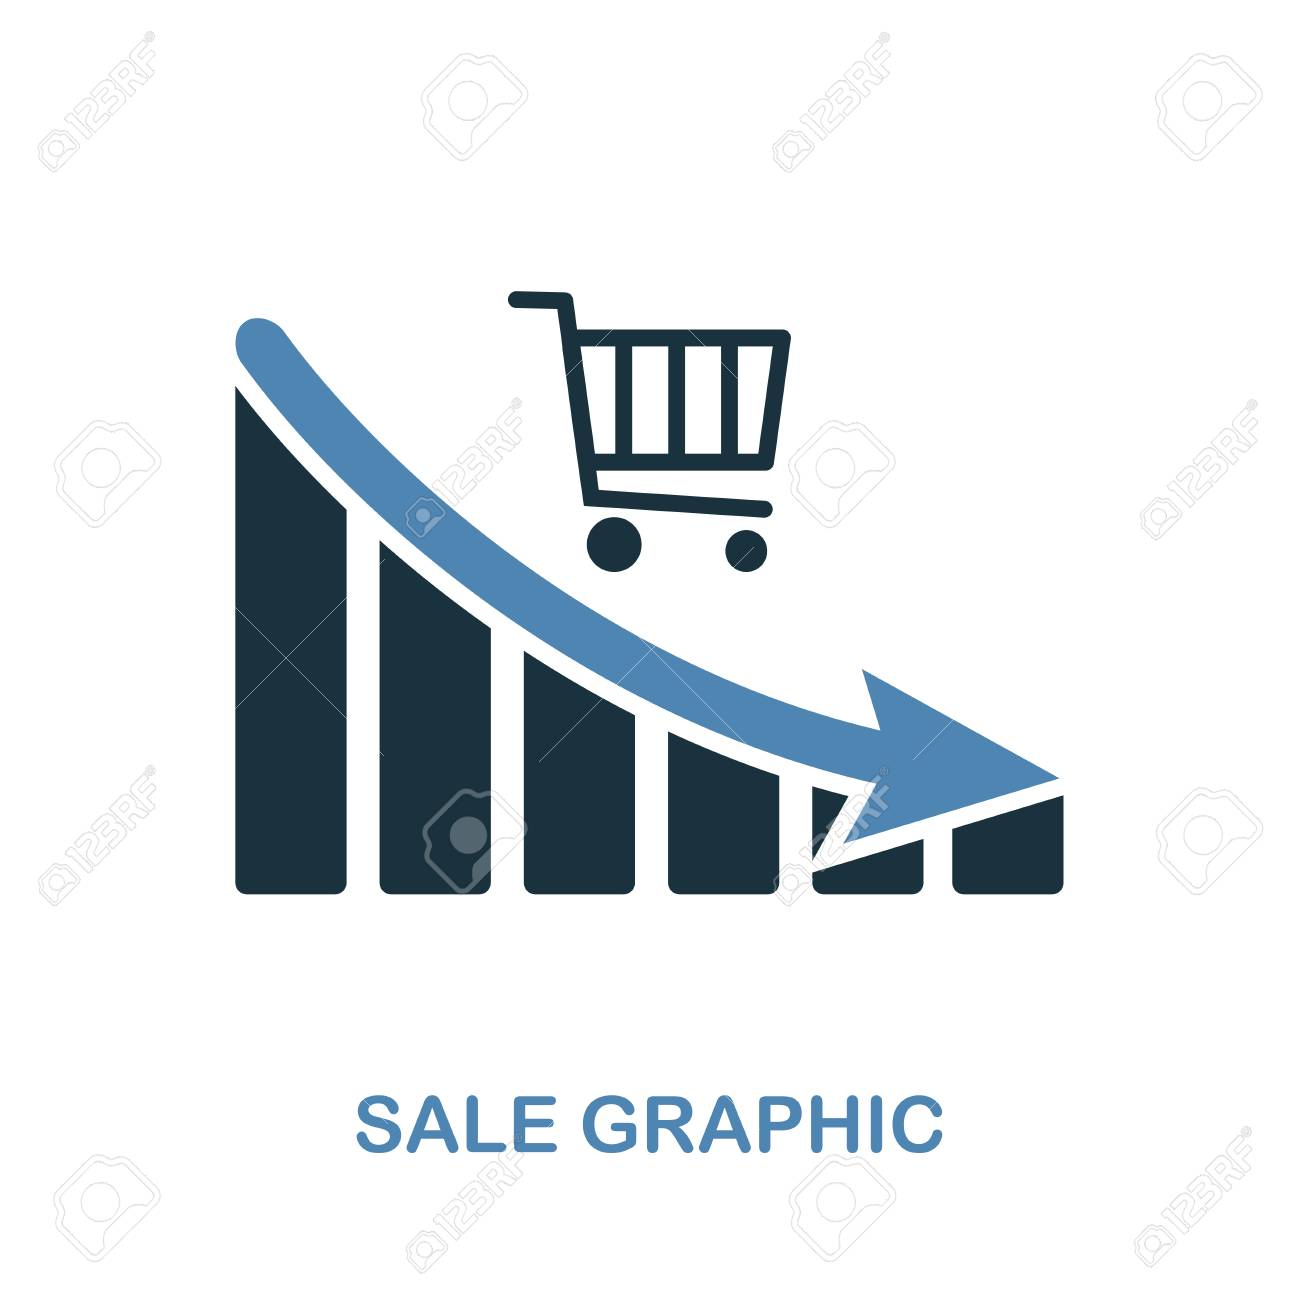 hight resolution of sale decrease graphic icon monochrome style design from diagram icon collection ui pixel